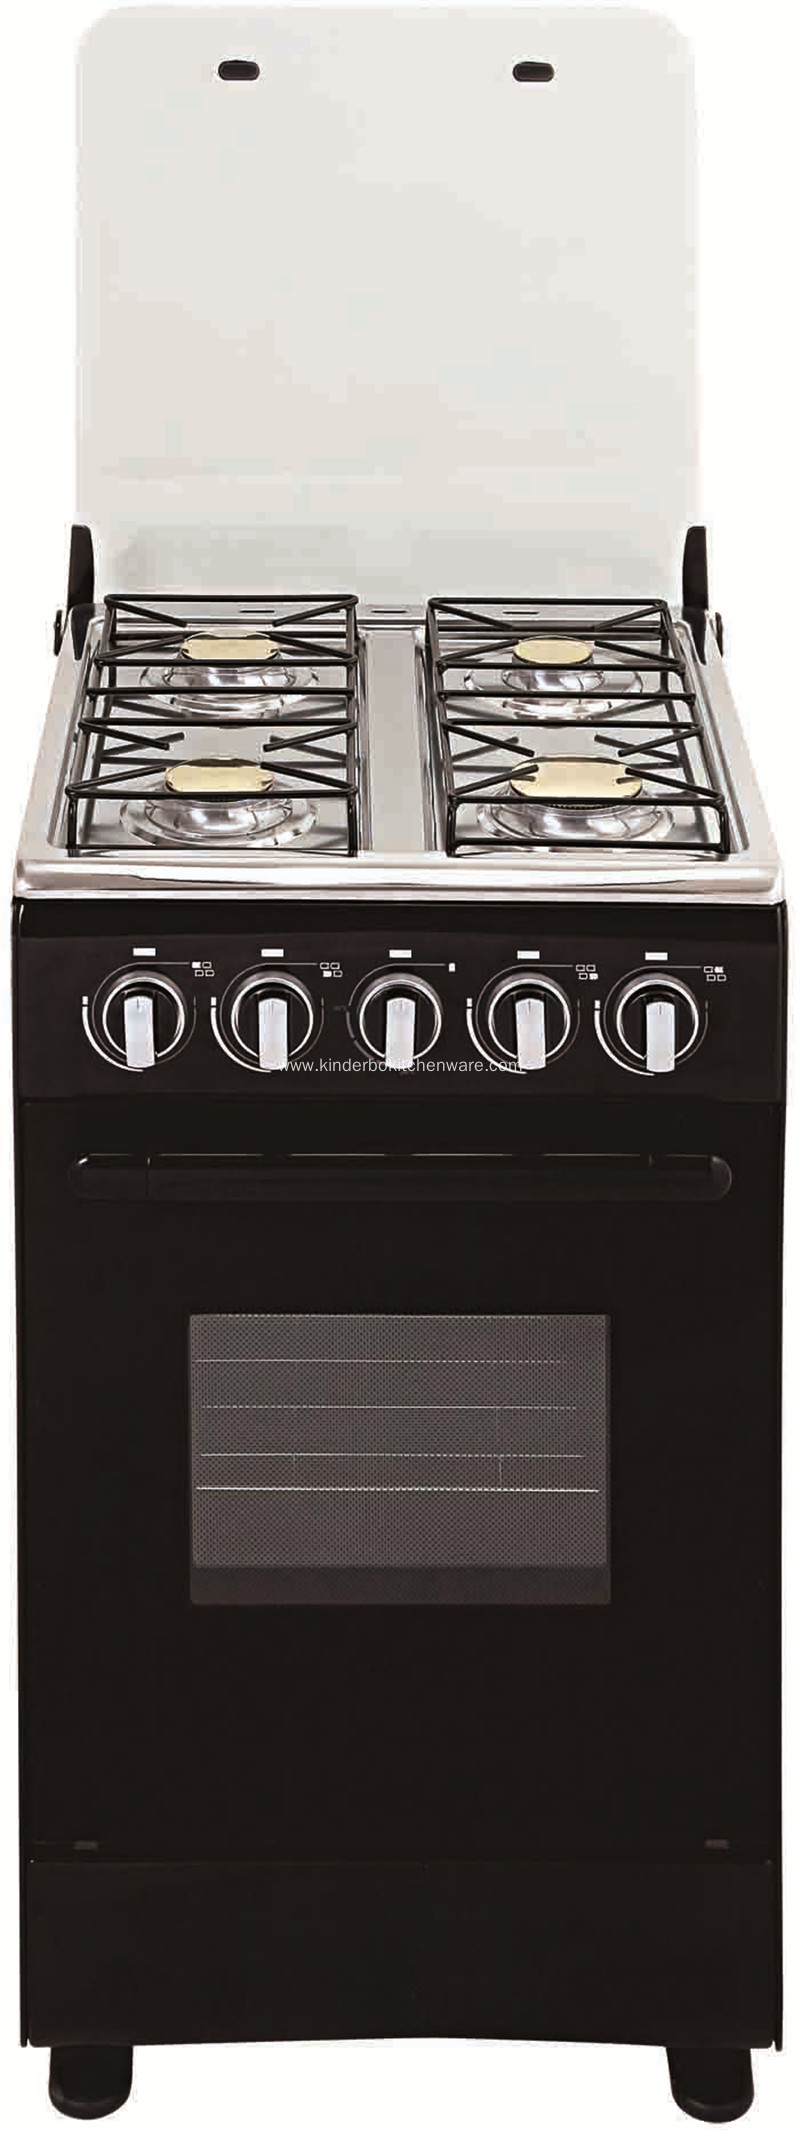 Gas Stove with Oven Freestanding Gascooker Gas Range Cooker